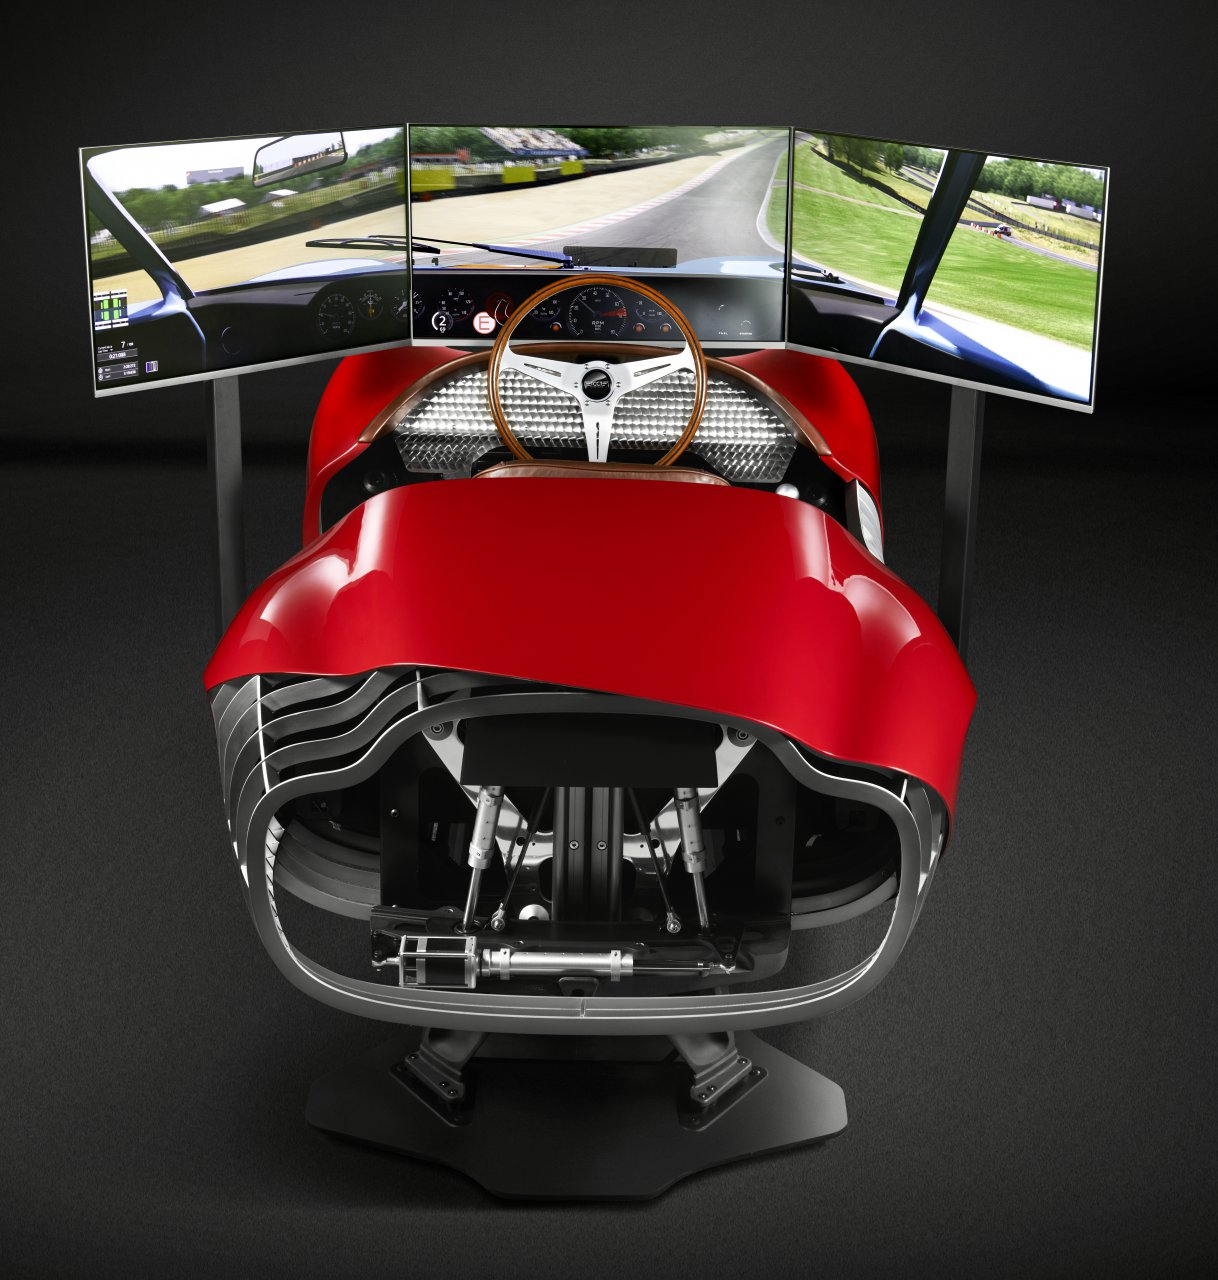 Driving simulators, Classic cars enter the world of electronic sports, ClassicCars.com Journal